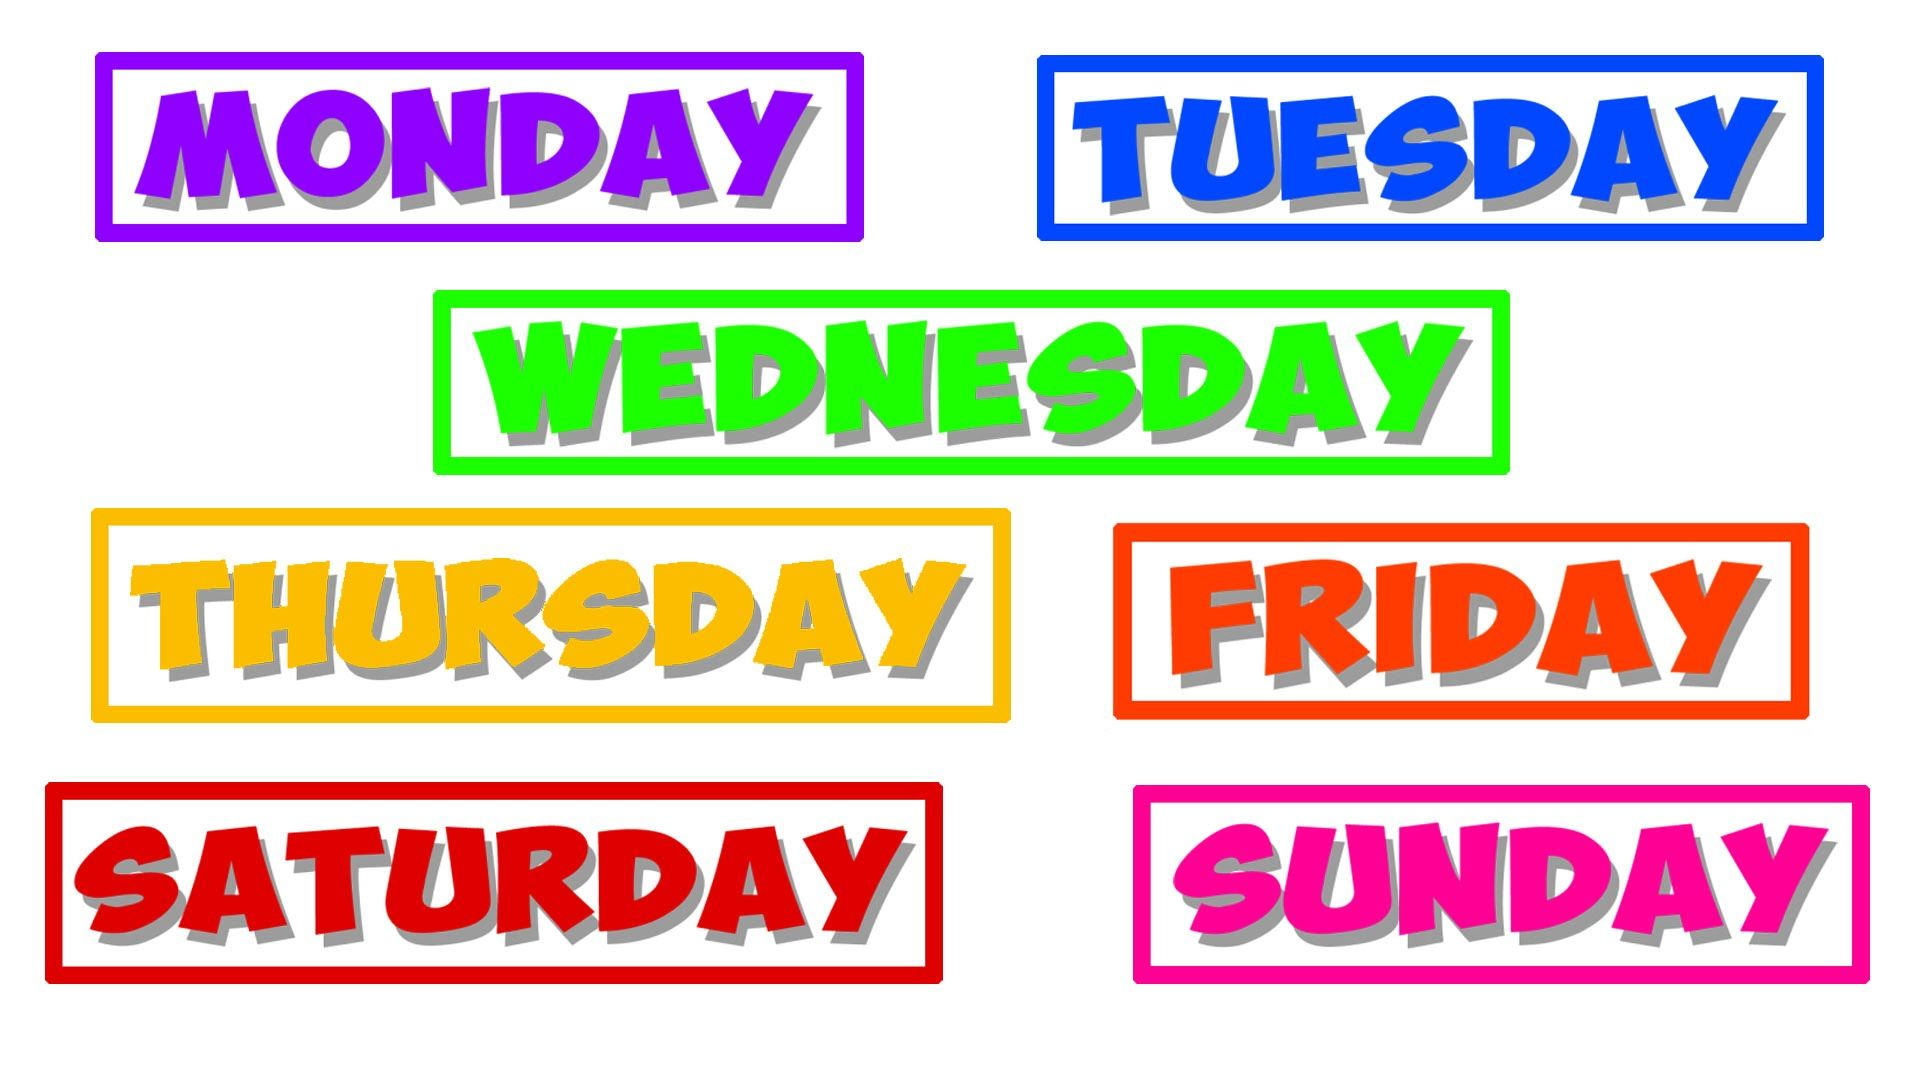 The Definitive Ranking of the Days of the Week